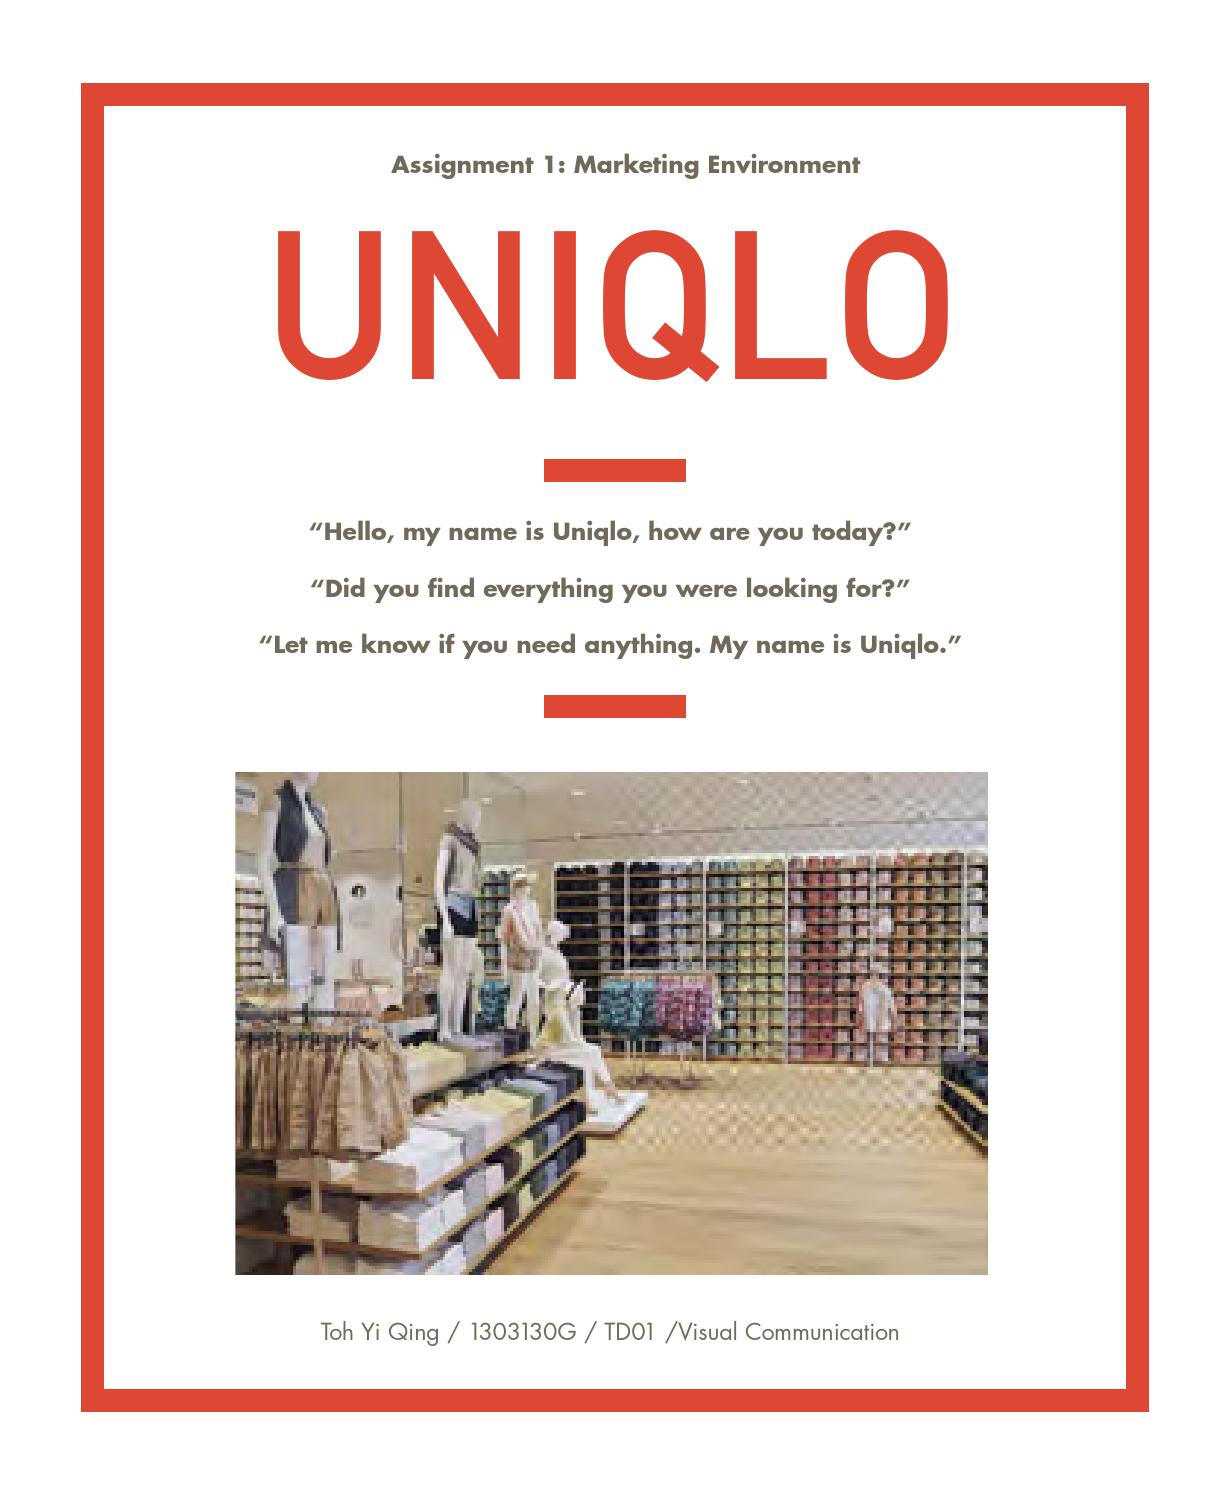 uniqlo competitive analysis by chena230  uniqlo marketing report